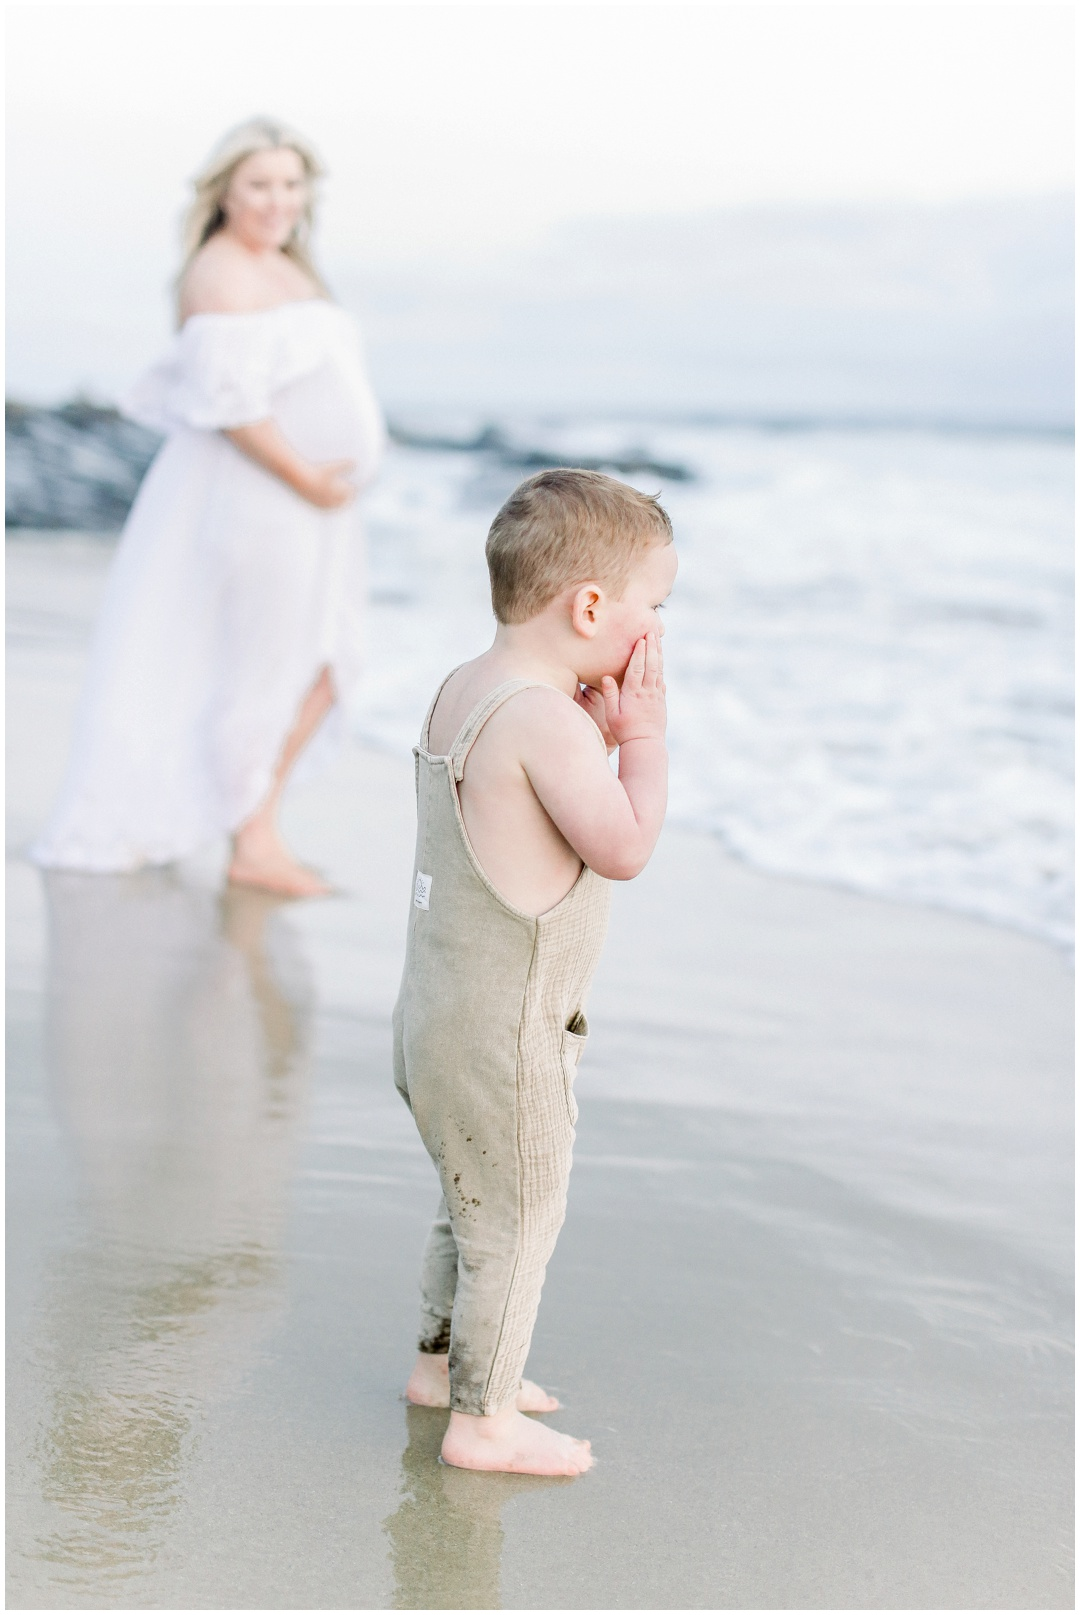 Newport_Beach_Newborn_Light_Airy_Natural_Photographer_Newport_Beach_Photographer_Orange_County_Family_Photographer_Cori_Kleckner_Photography_Newport_Beach_Photographer_Maternity_kole_calhoun56_kole_calhoun_Jennifer_Calhoun_Knox_Calhoun_3719.jpg